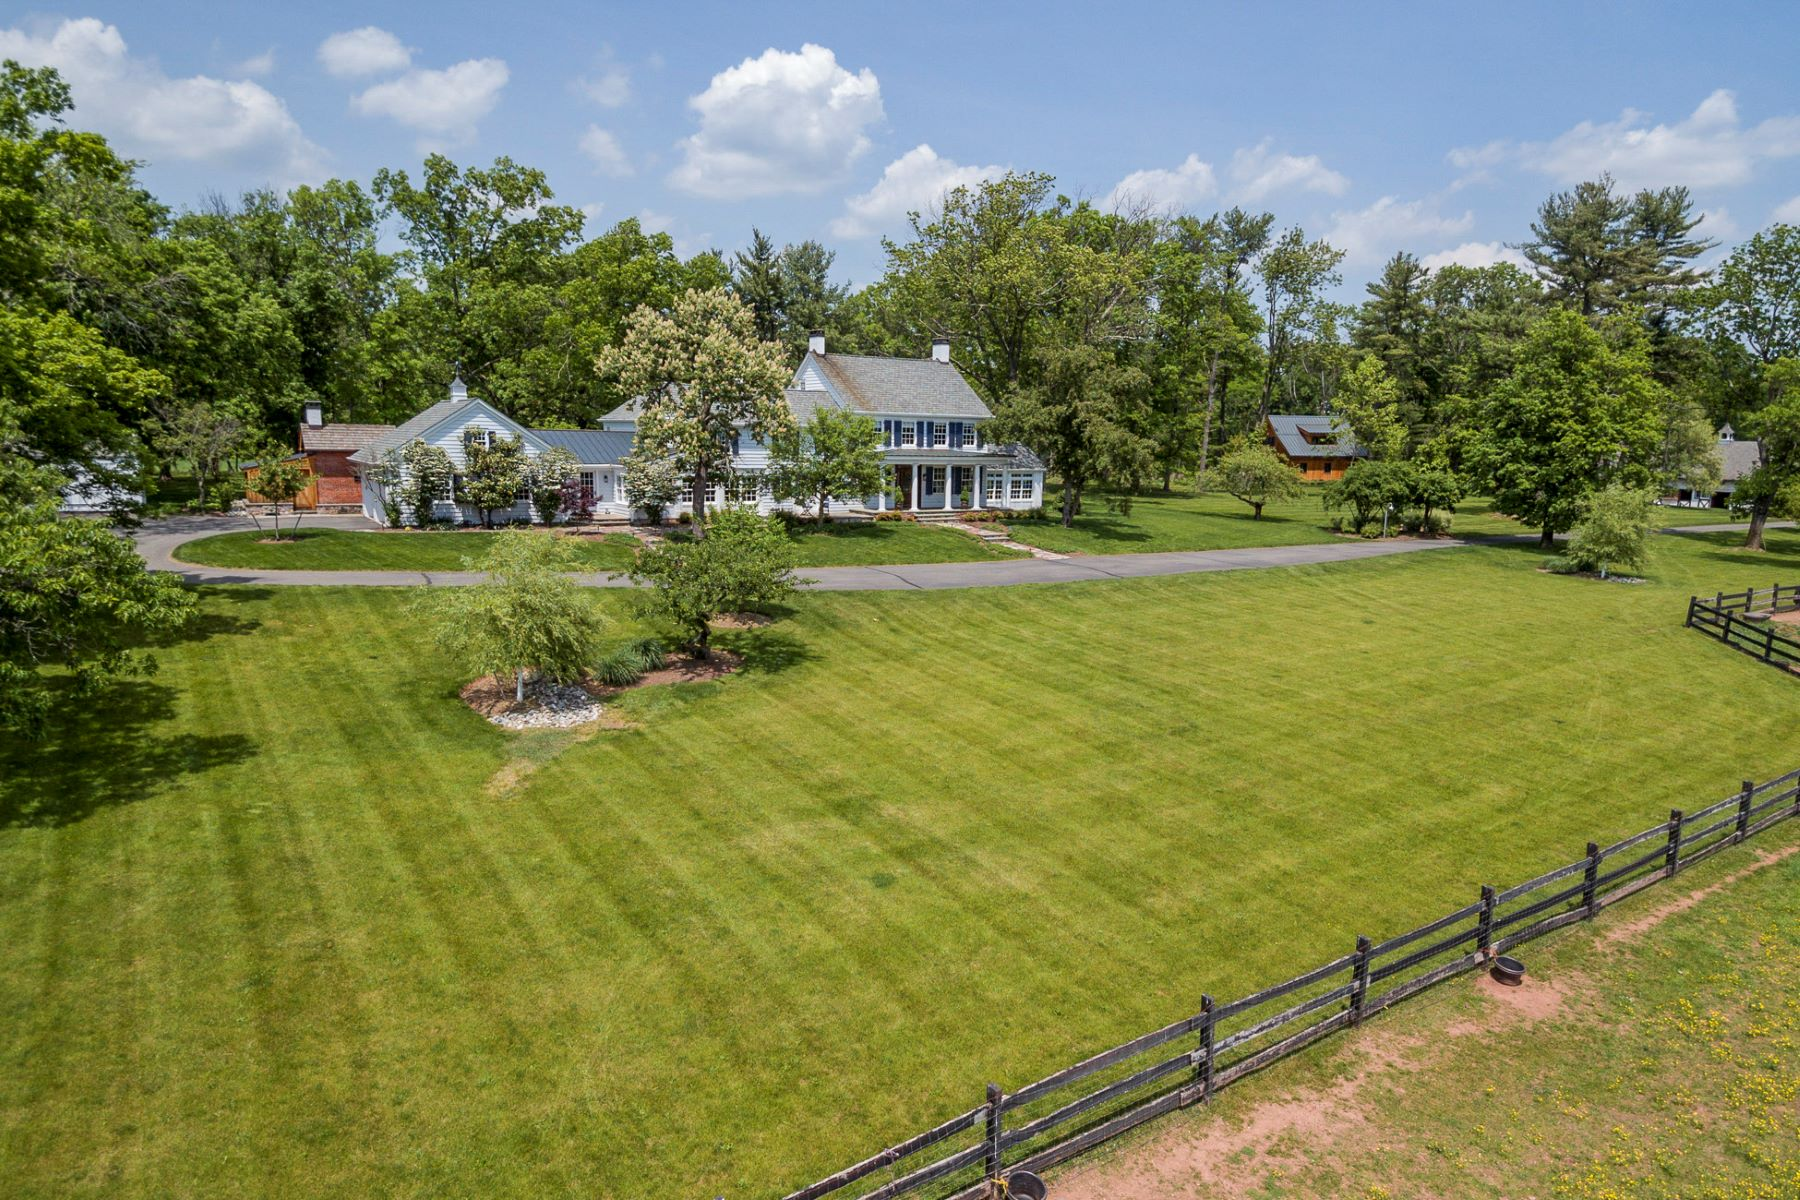 Single Family Homes for Sale at Historic Farm Reimagined for the Modern Equestrian - Hopewell Township 266 Province Line Road, Skillman, New Jersey 08558 United States